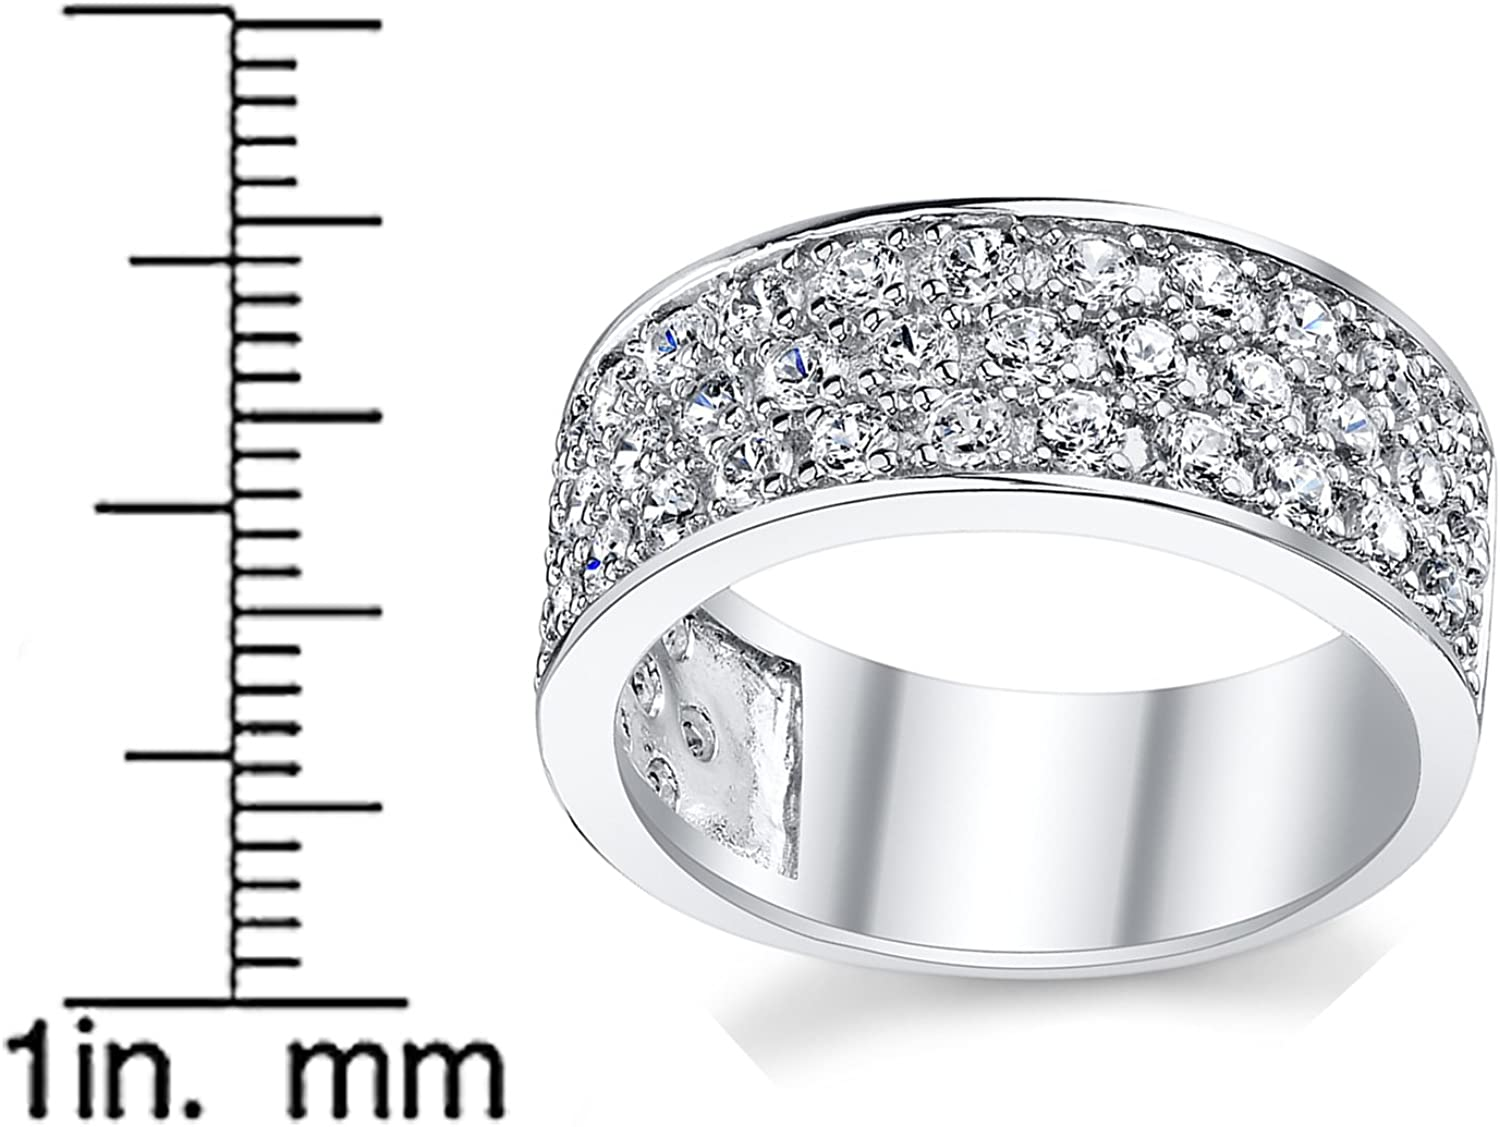 Details about  /Mens 925 Sterling Silver  Round CZ Luxury Engagement Wedding Band Ring Size 7-12